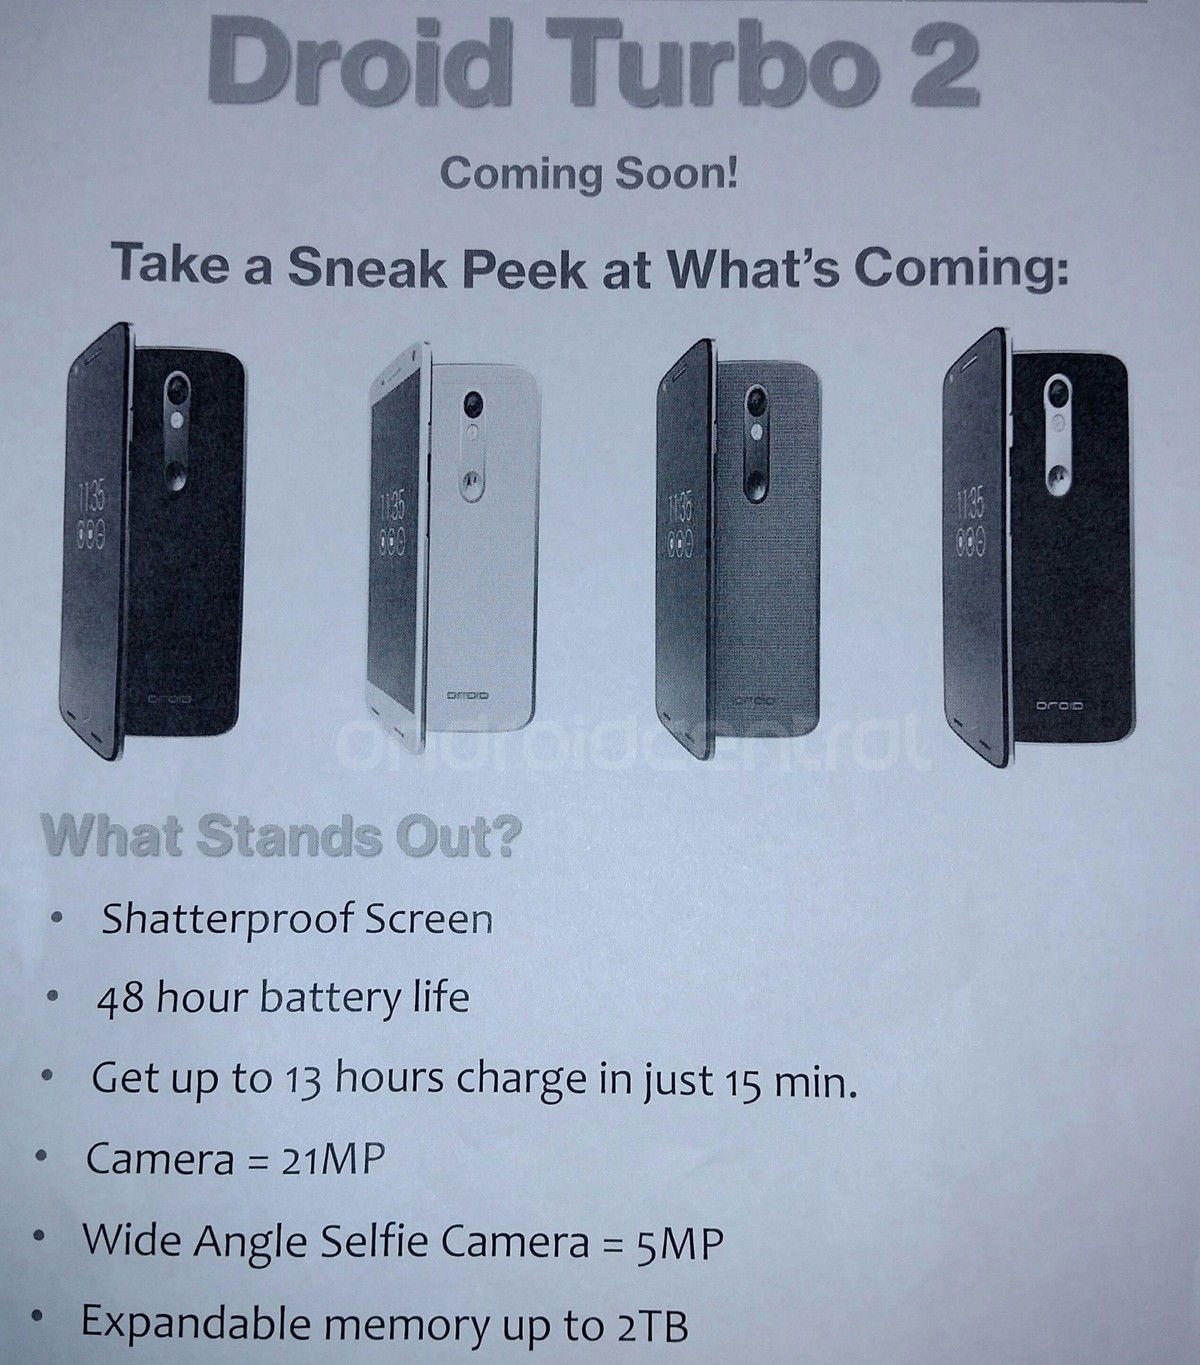 Motorola DROID Turbo 2 Leaked Info Sheet Confirms SD Card Slot (Up